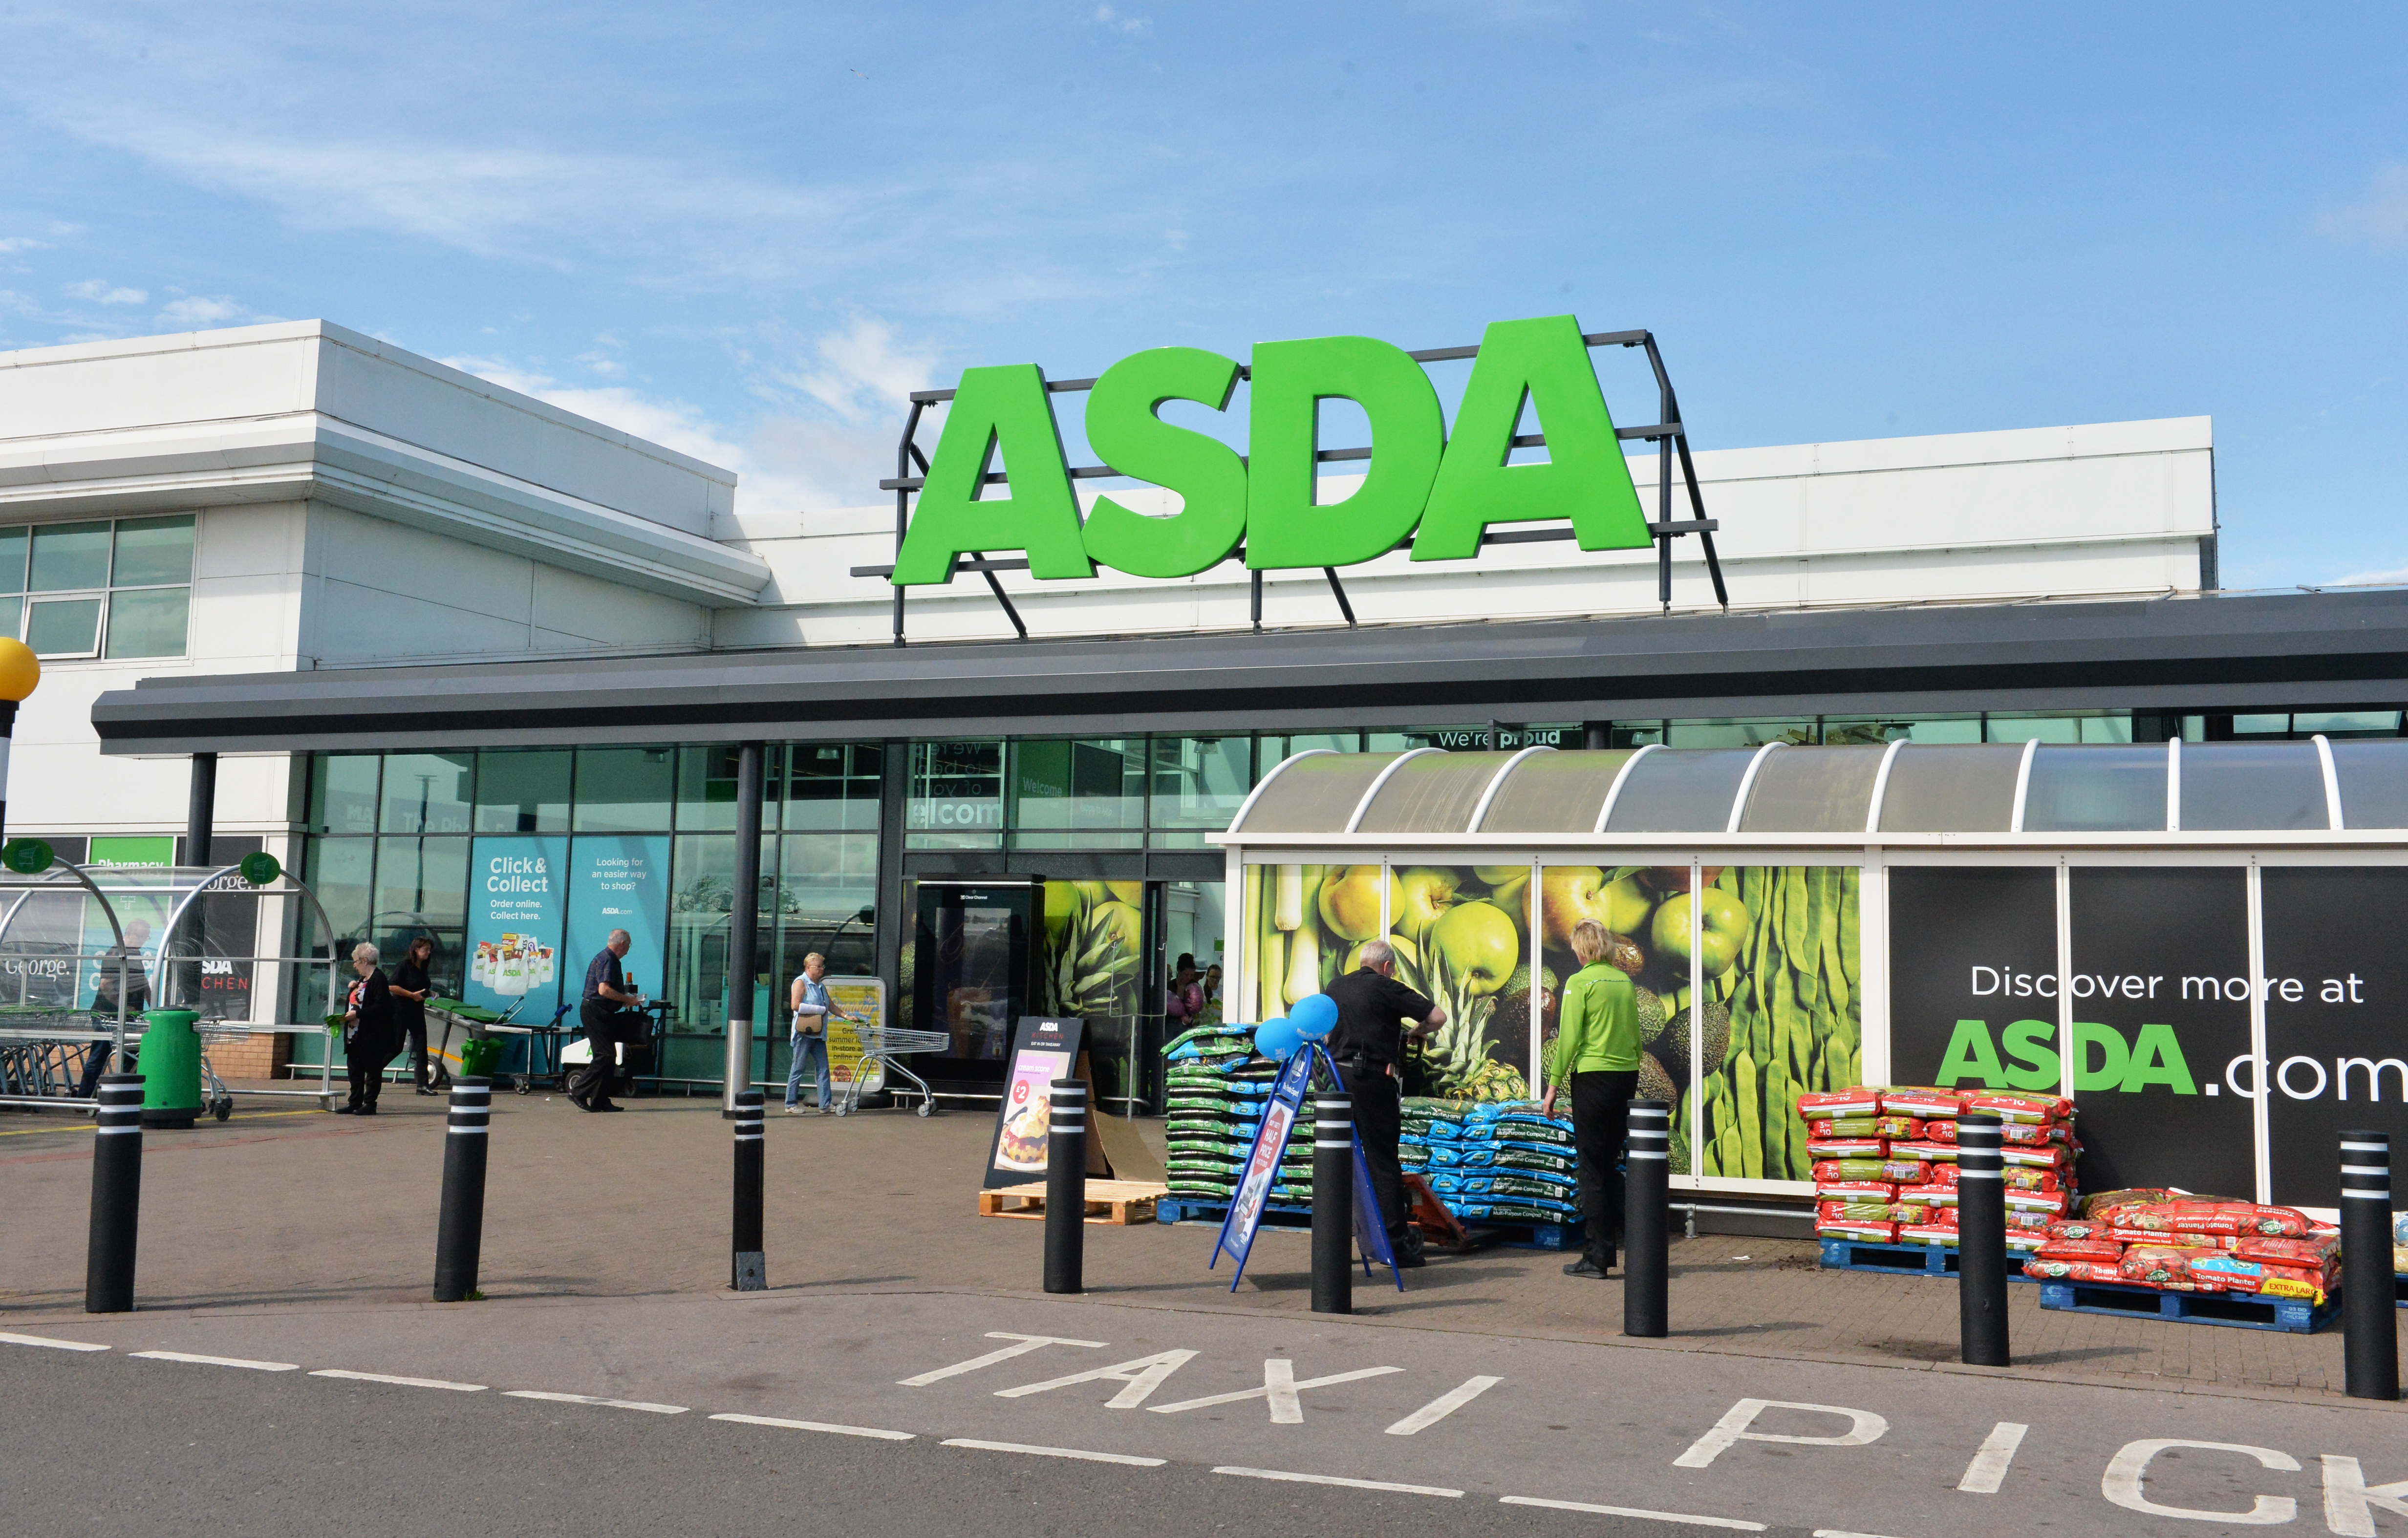 Asda is to turn part of one store into a vaccination centre